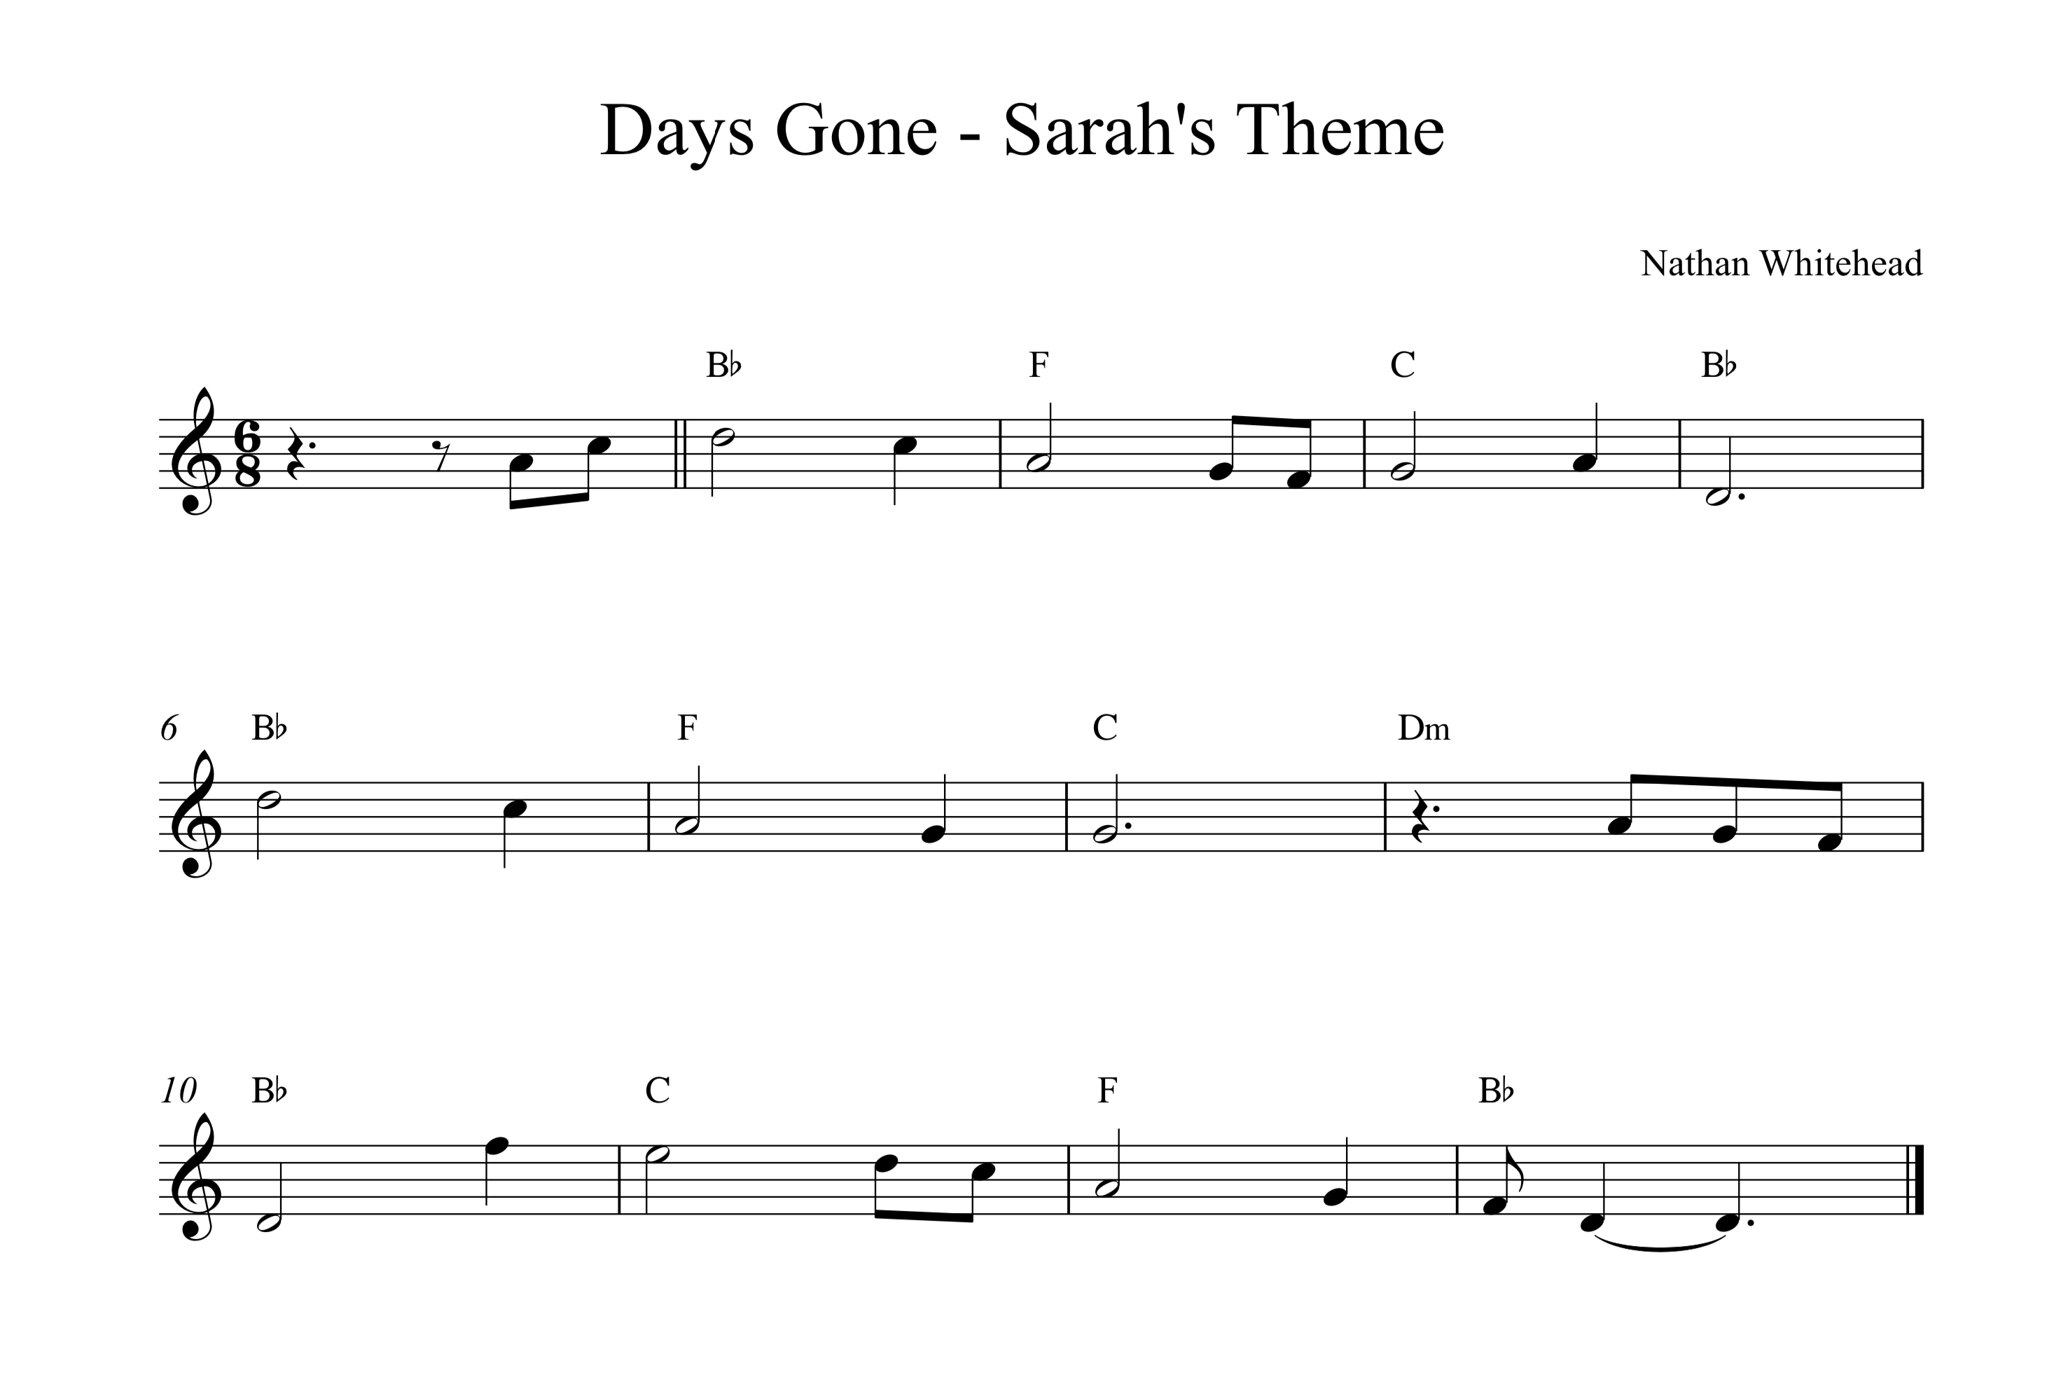 Days Gone - Sarah's Theme